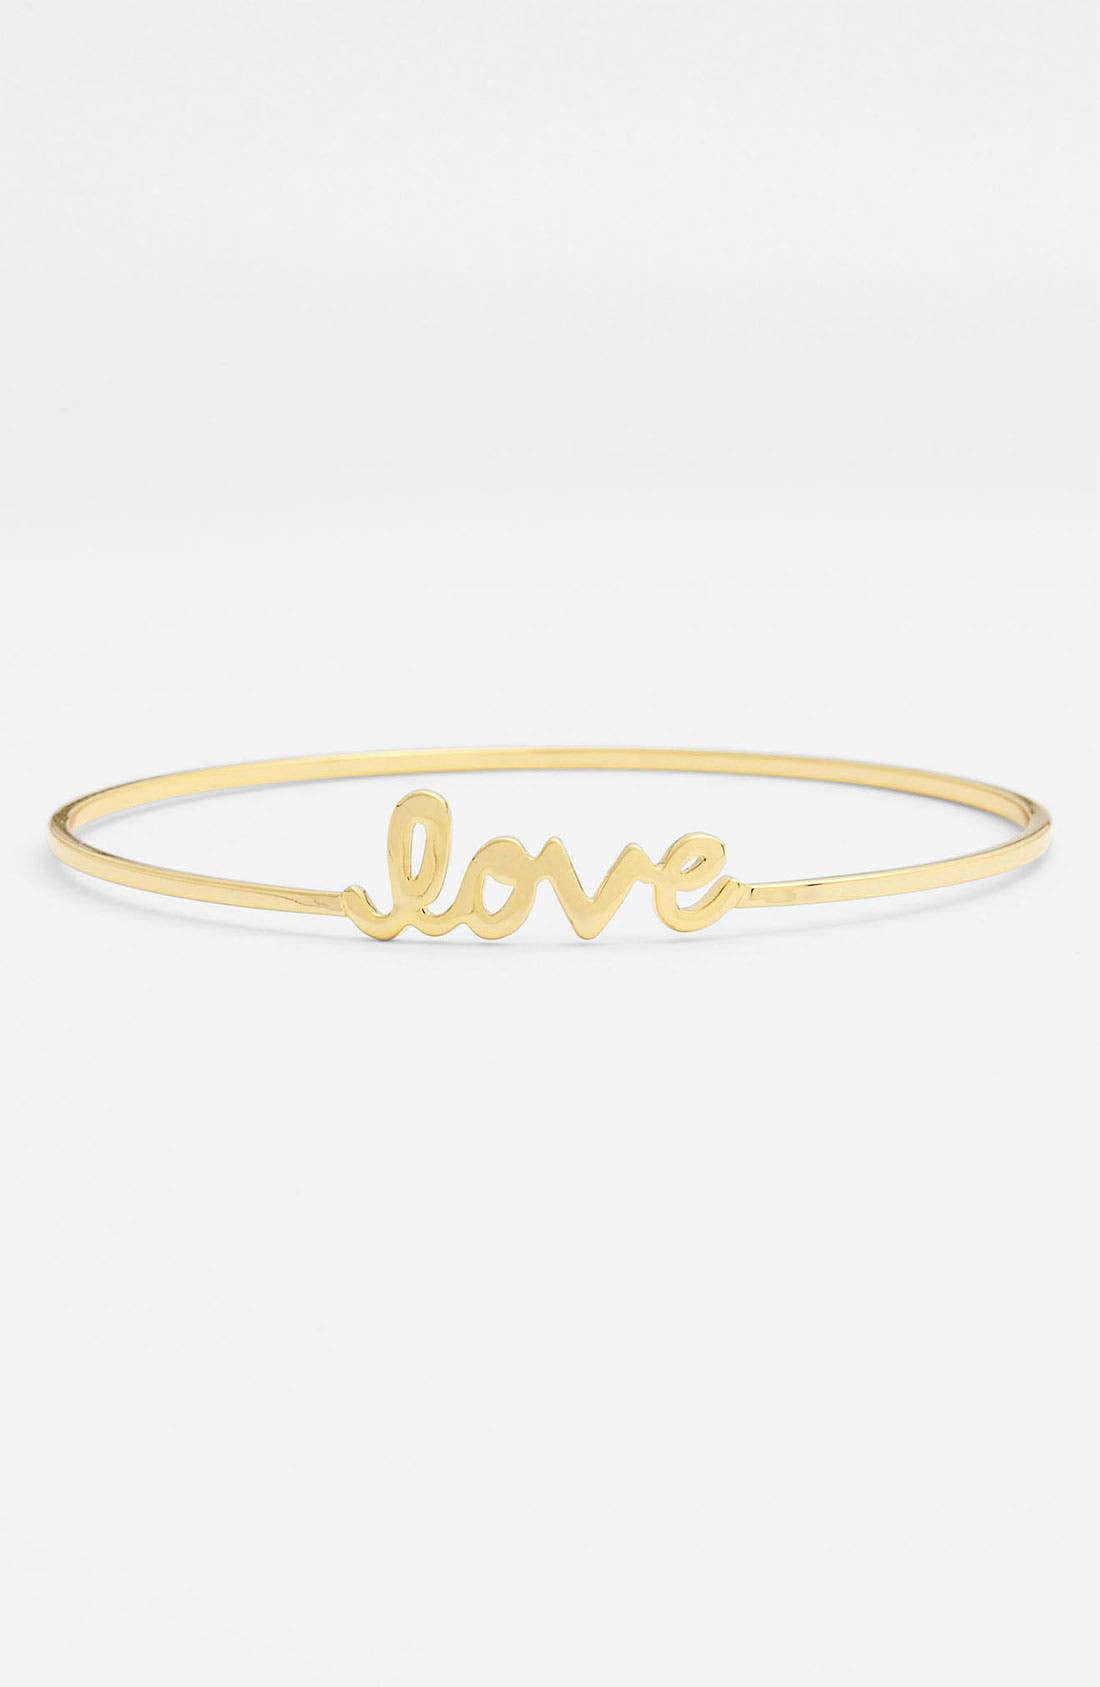 Main Image - Ariella Collection 'Messages - Love' Script Station Bangle